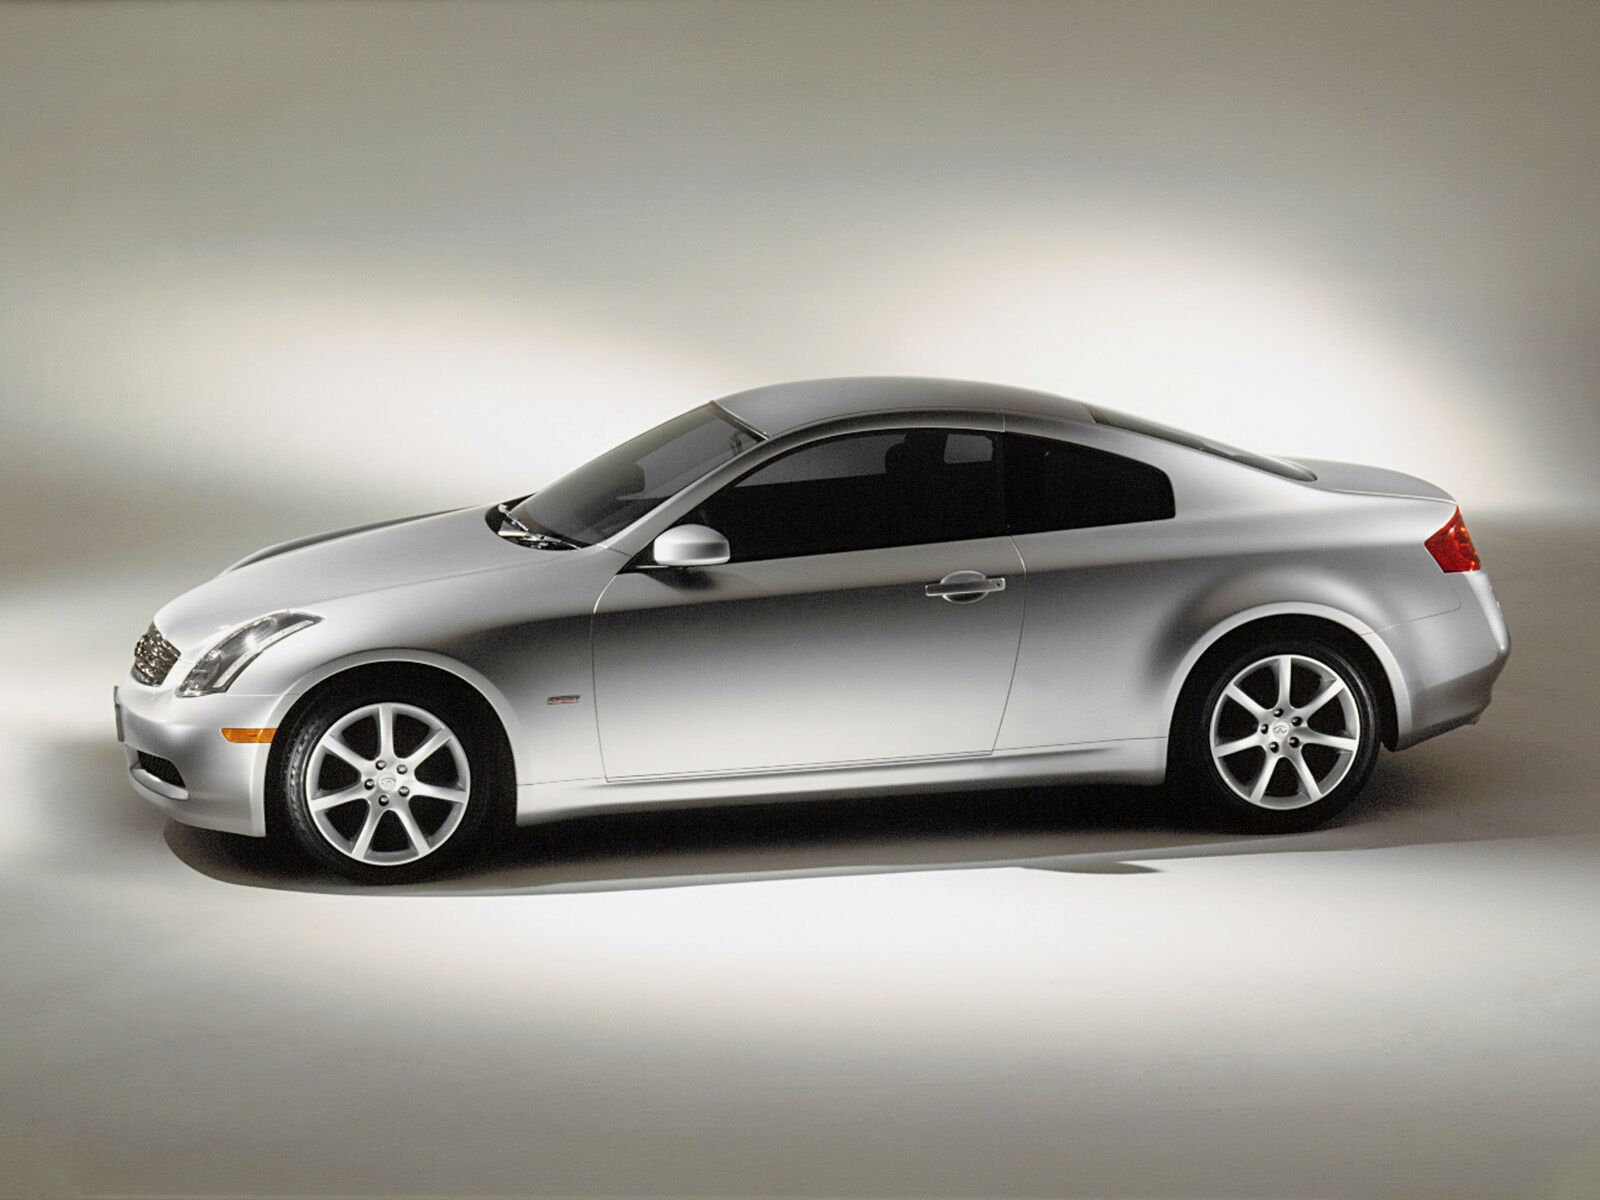 Infiniti g35 coupe sports coupes pinterest coupe cars and infiniti coupe as a future car vanachro Image collections